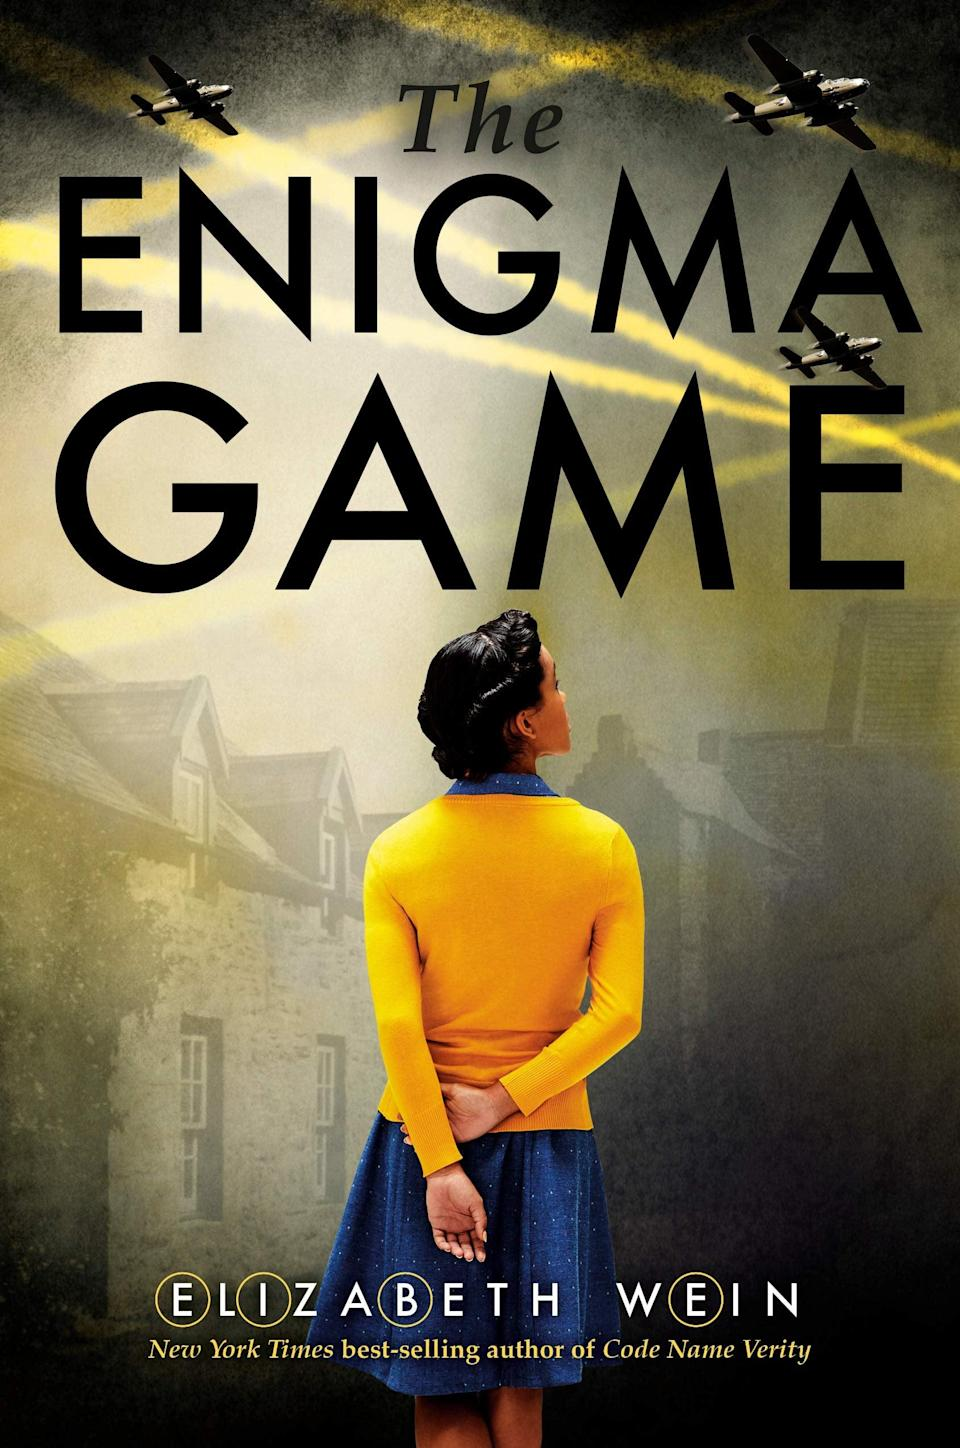 <p>Elizabeth Wein's <span><strong>The Enigma Game</strong></span> is another engrossing World War II-set novel from the author who gave us <strong>Code Name Verity</strong>. In 1940, 15-year-old Louisa Adair is searching for a way to contribute to the war effort when she takes on the job of caring for an elderly German woman in Windyedge, Scotland. At first, Louisa feels as if she should be doing something more worthy, but she soon finds herself embroiled in a code-cracking mission of epic proportions. </p> <p><em>Out Nov. 3</em></p>